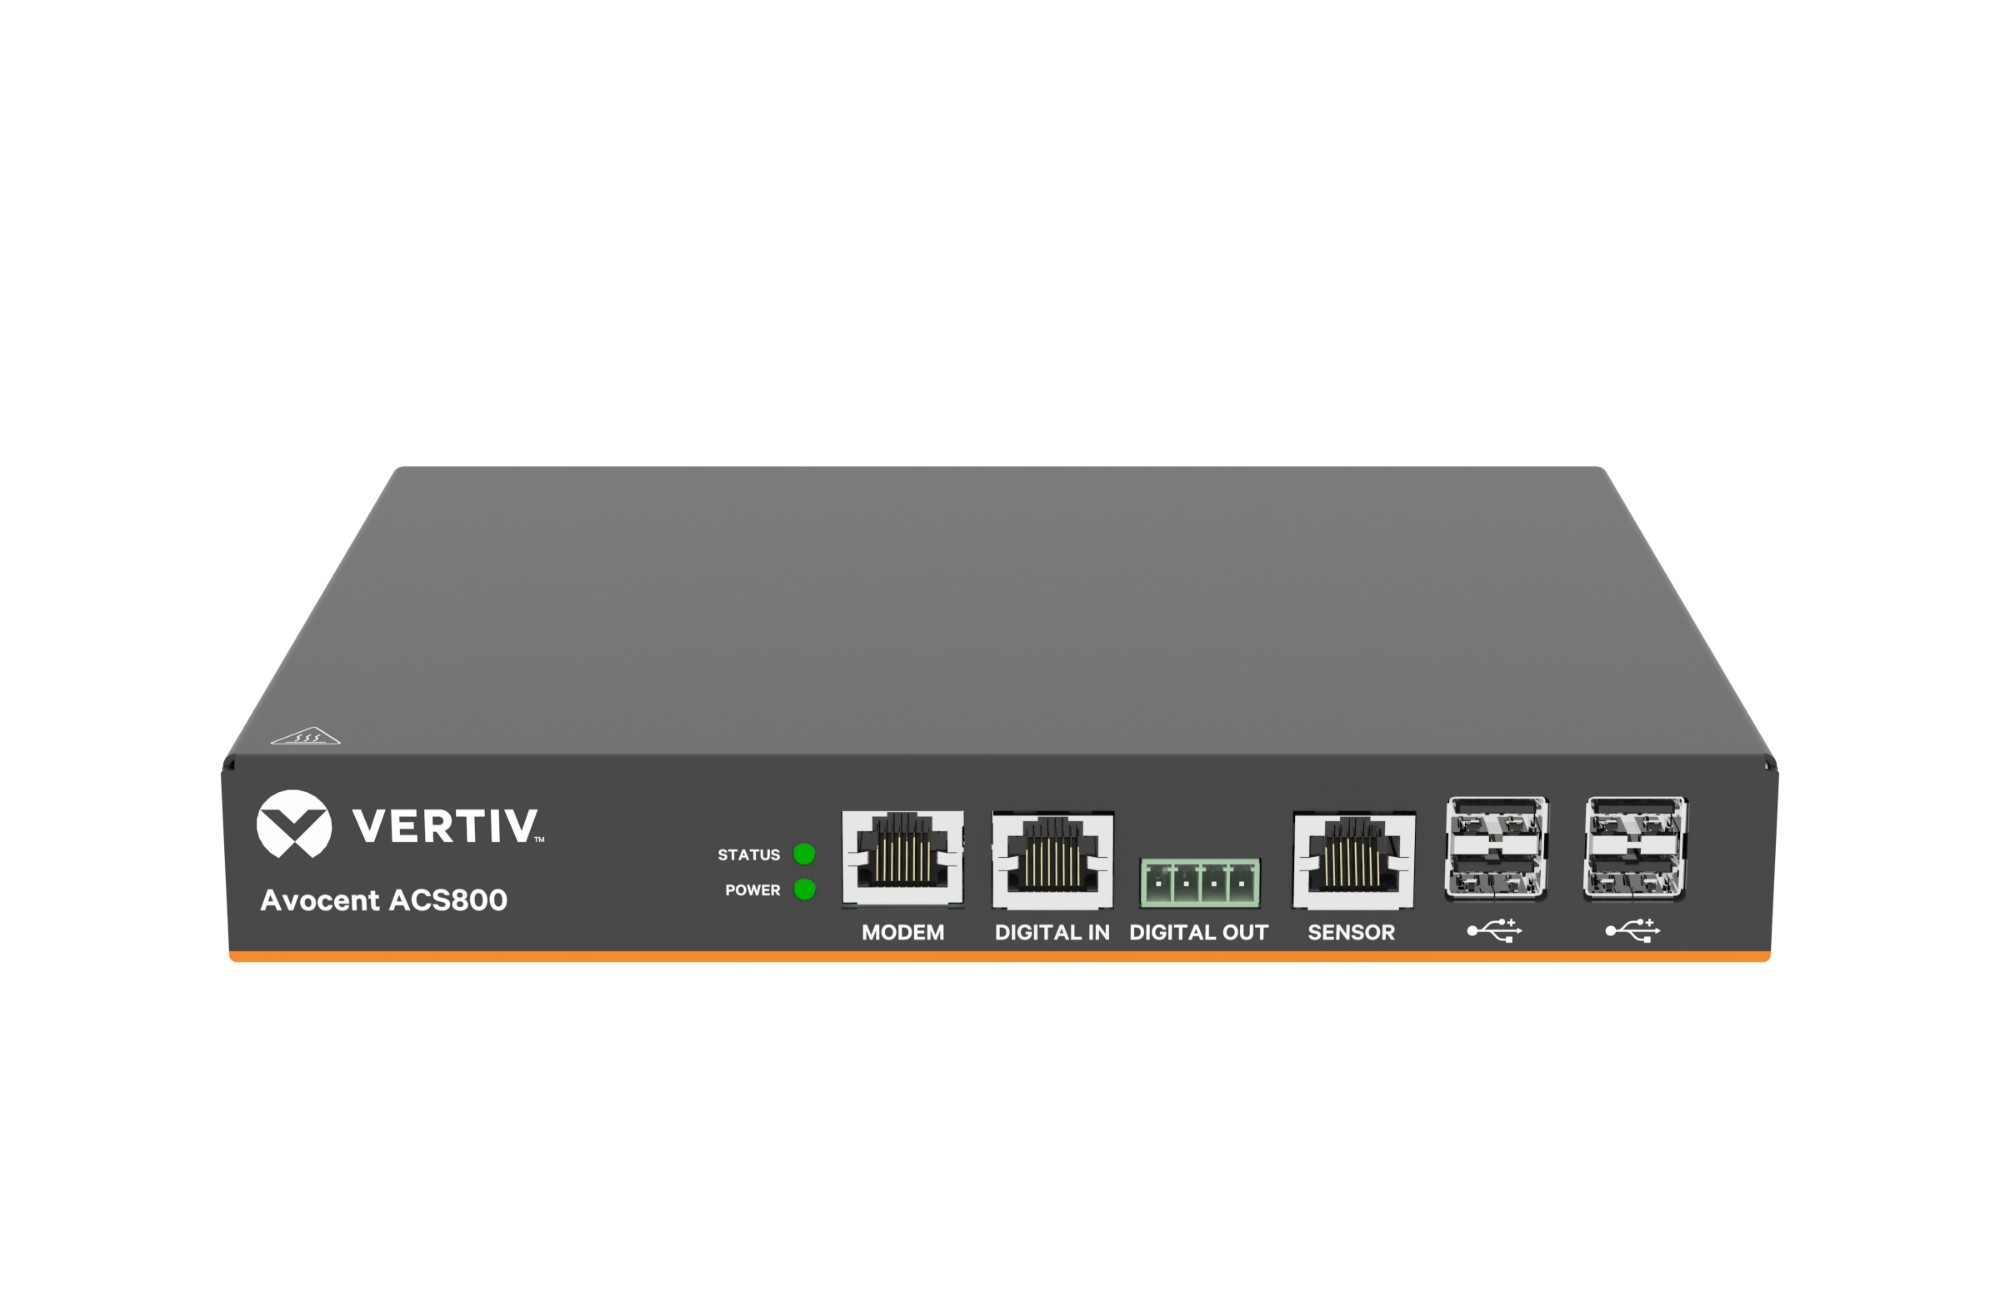 Vertiv Avocent 8-Port ACS800 Serial Console with analog modem, external AC/DC Power Brick - Jumper cord: Plug C14 to connector C13